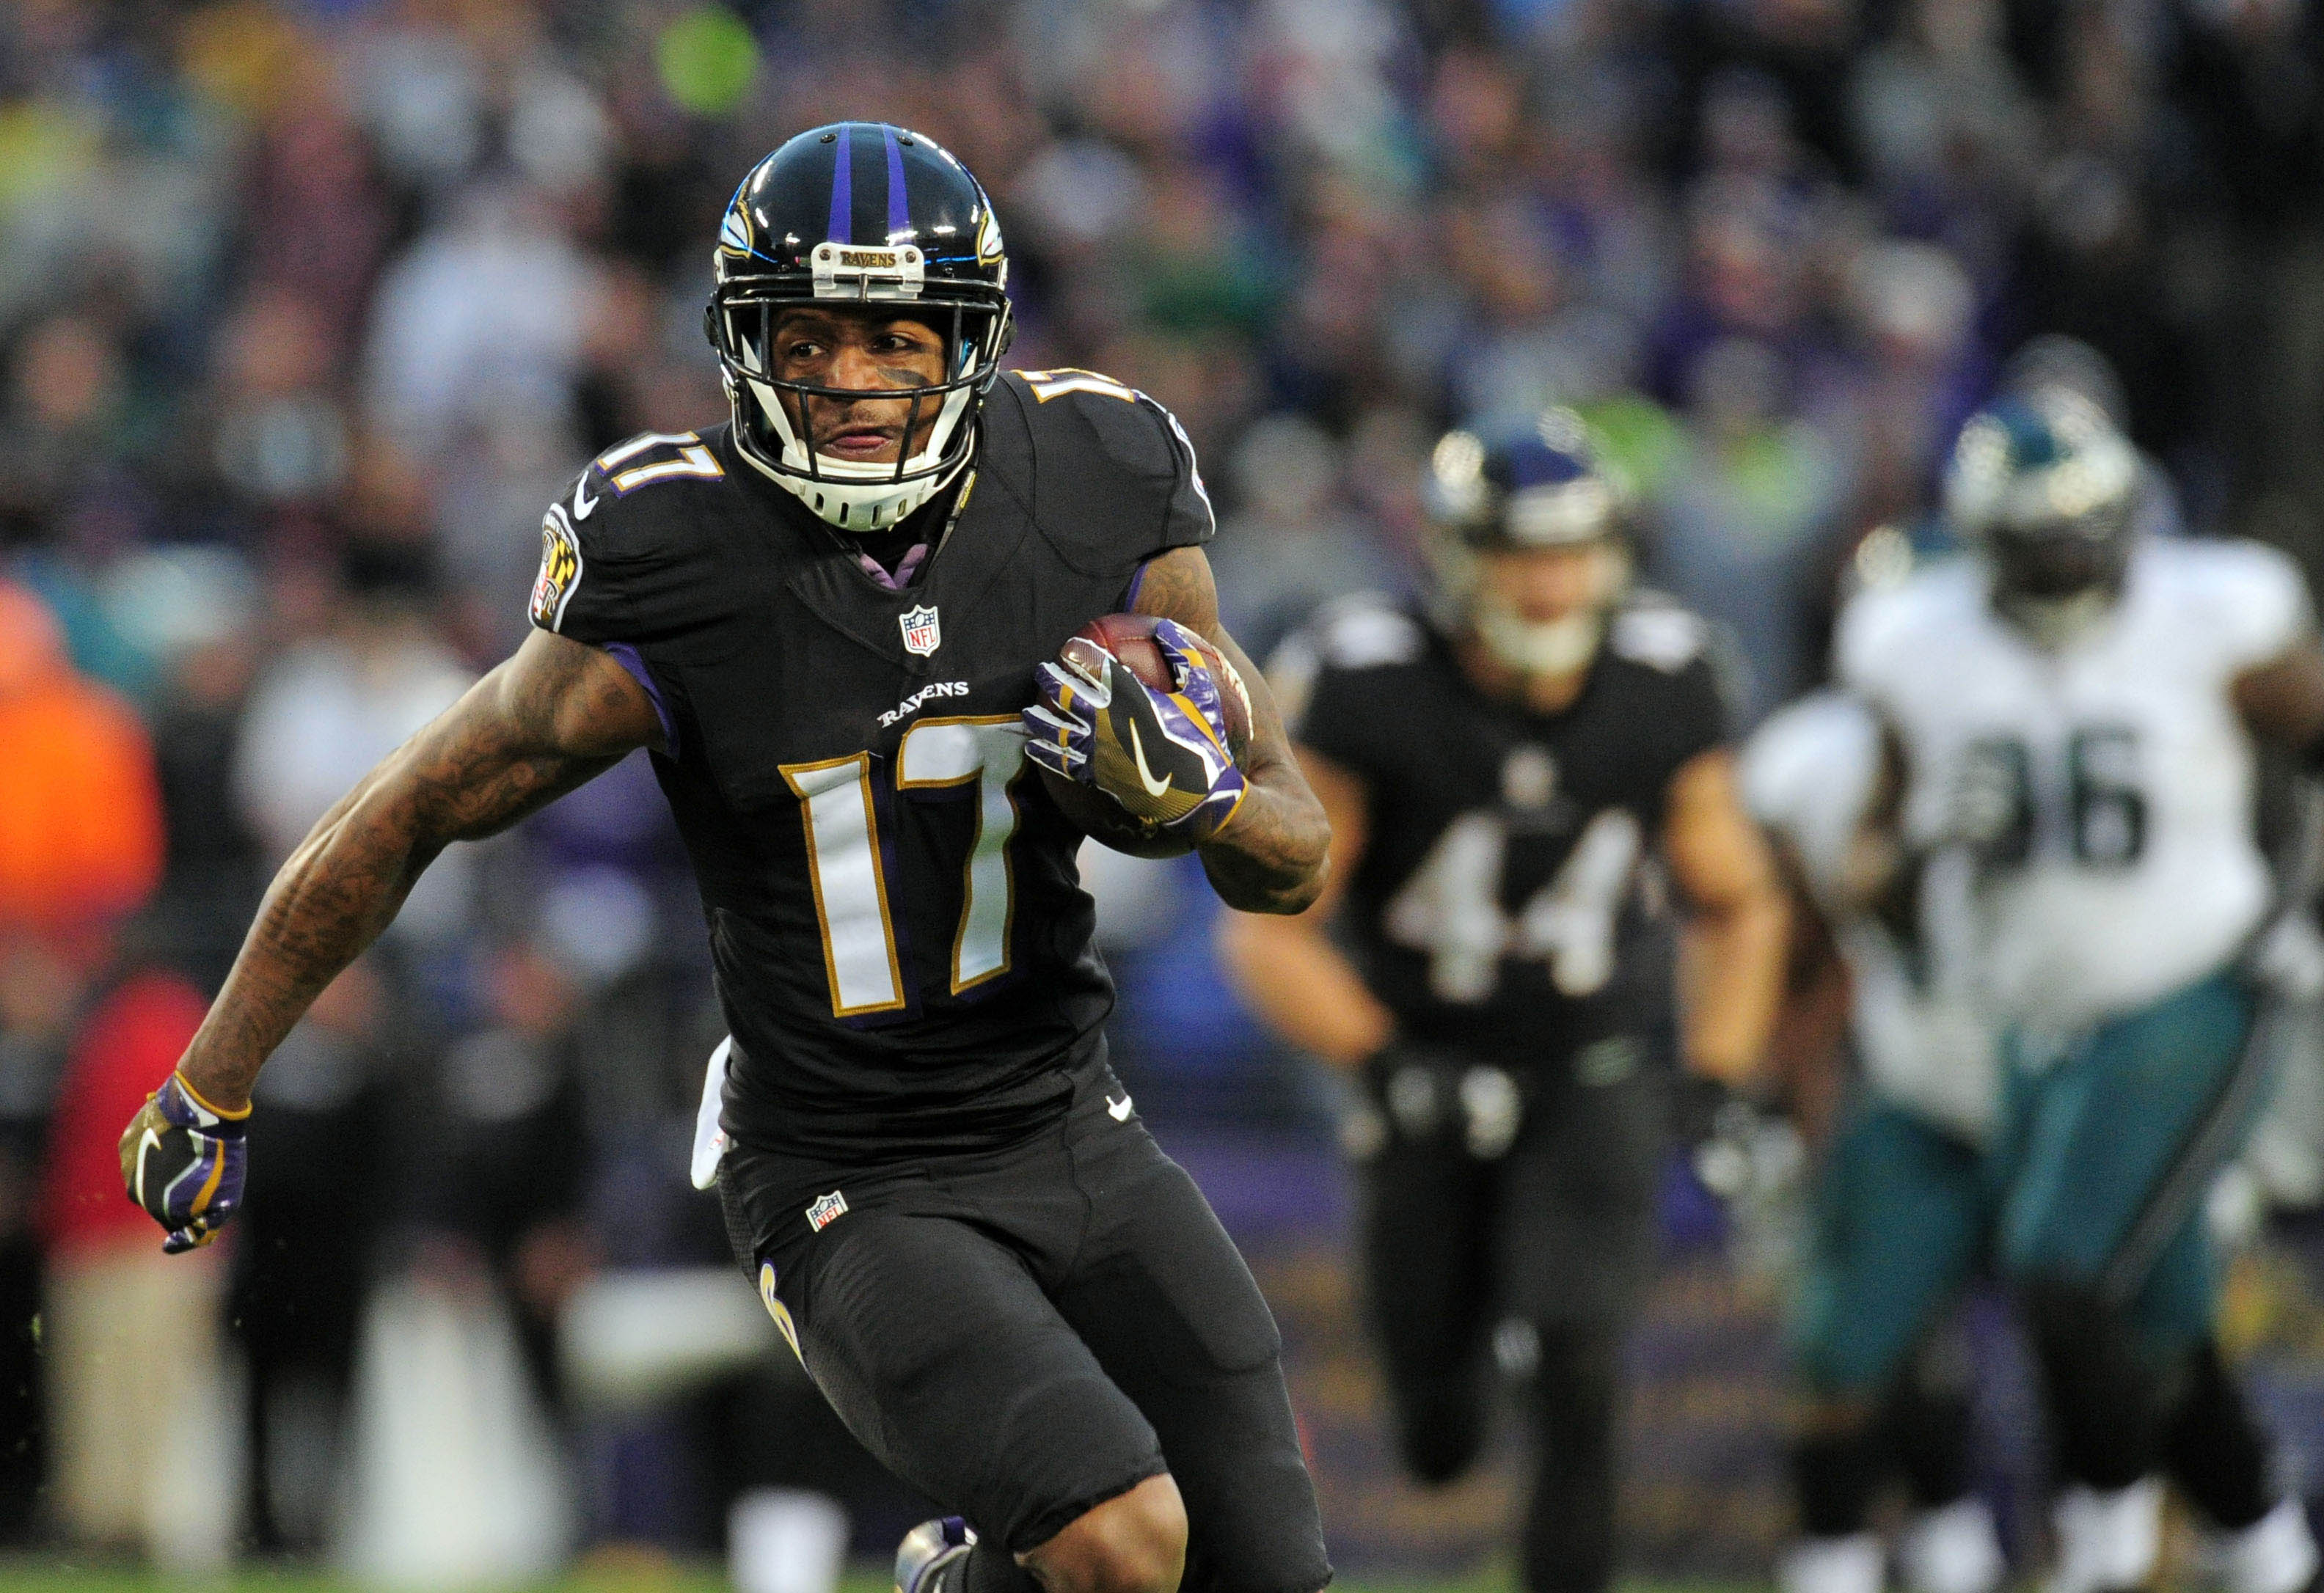 Baltimore Ravens  Ranking Best-Worst Uniform Combinations. by Joe Schiller  2 years ... 8e7886403